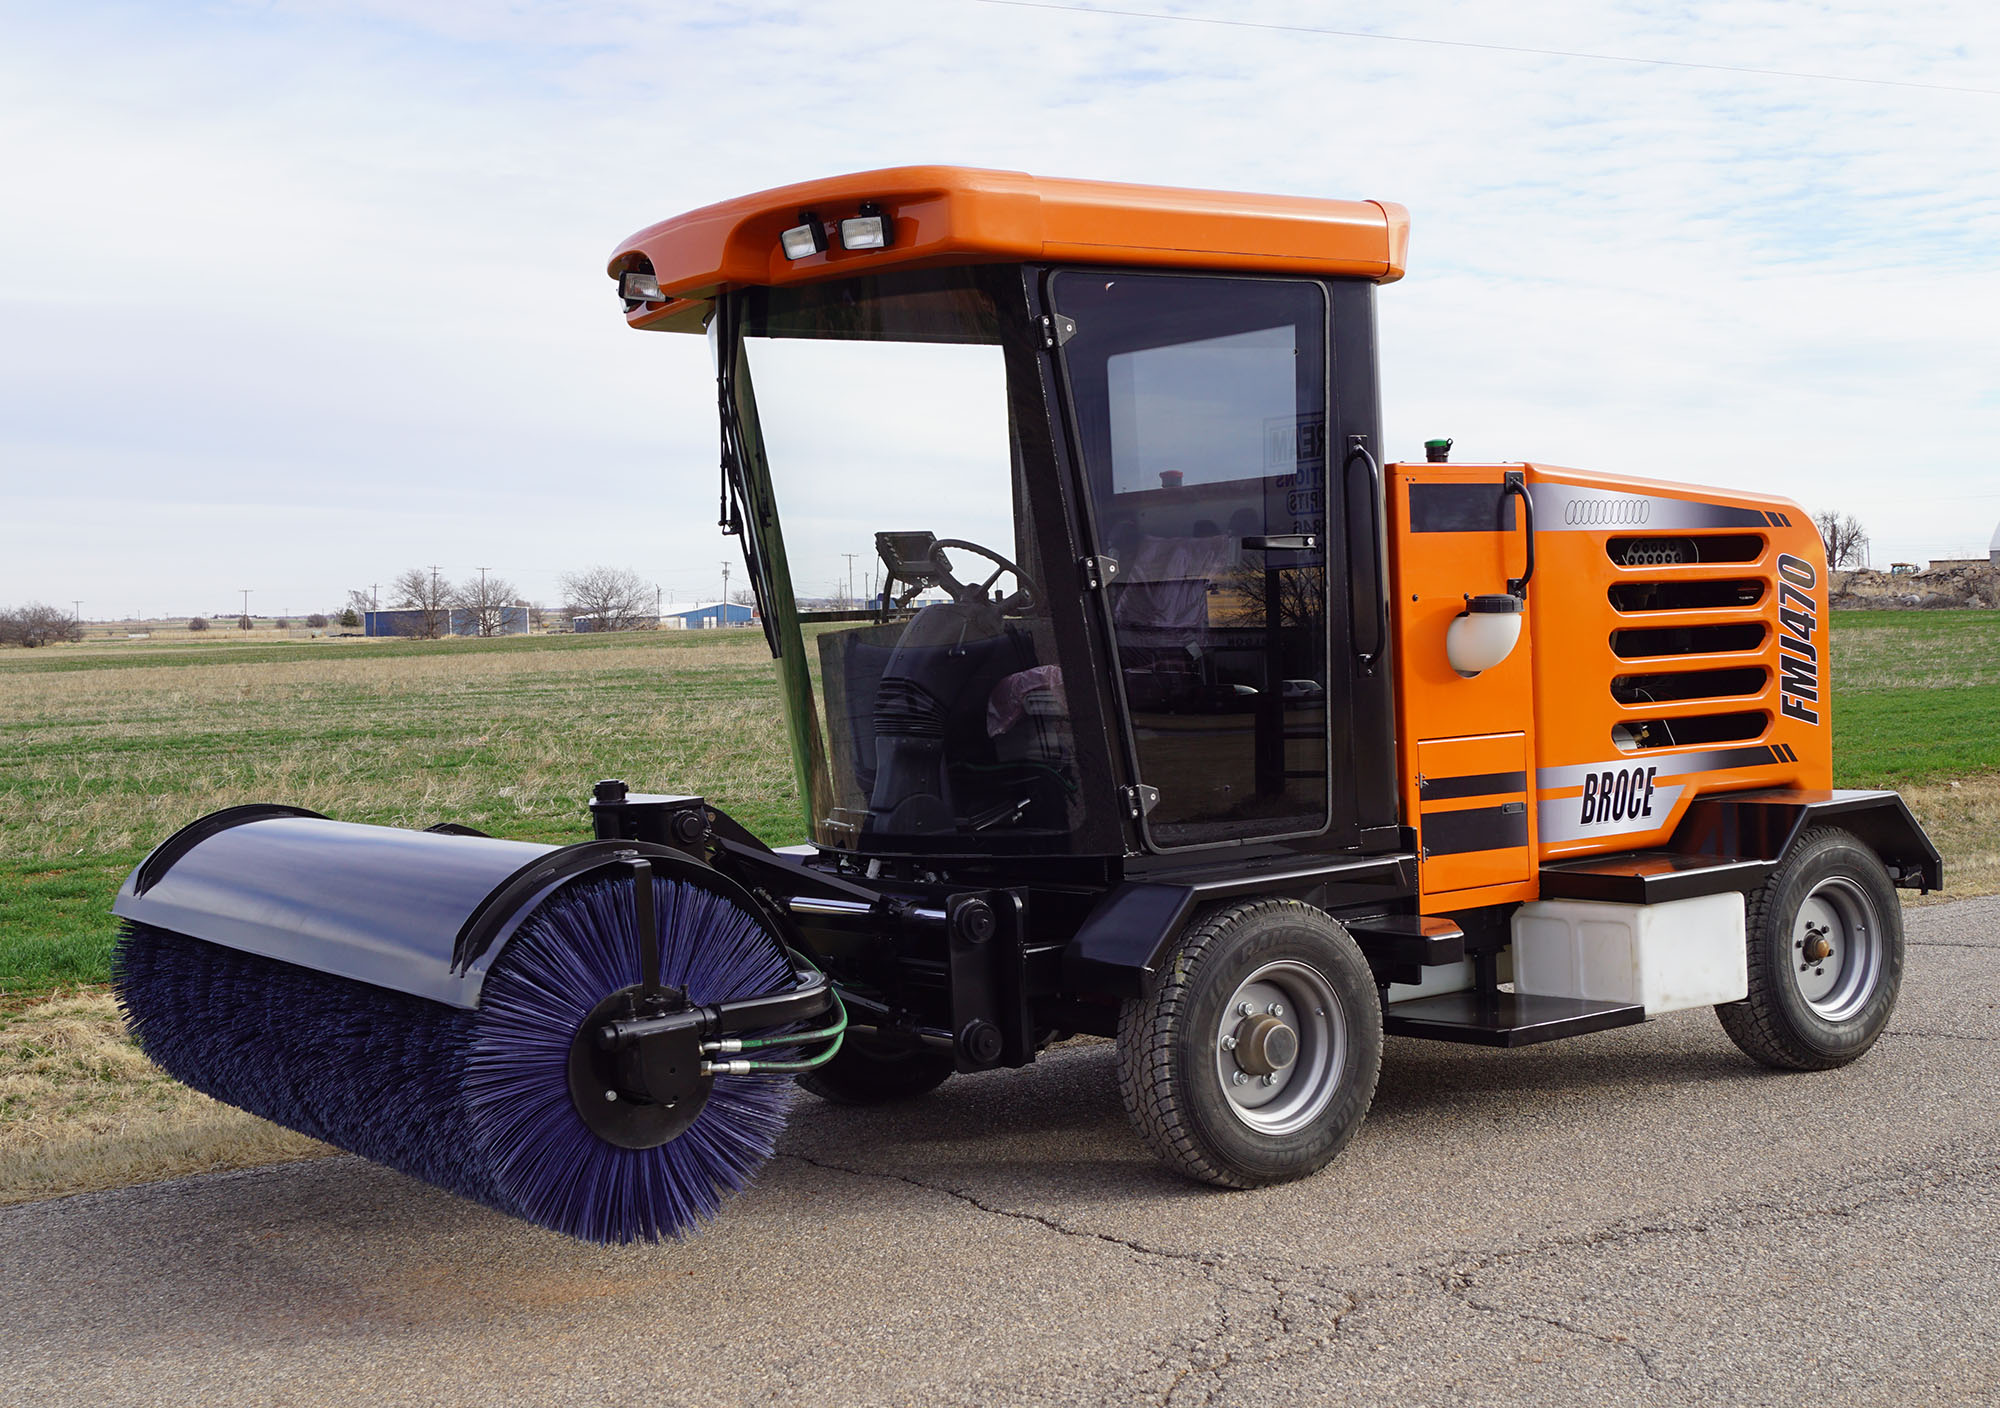 The Broce Front Mount Construction Sweeper FMJ470